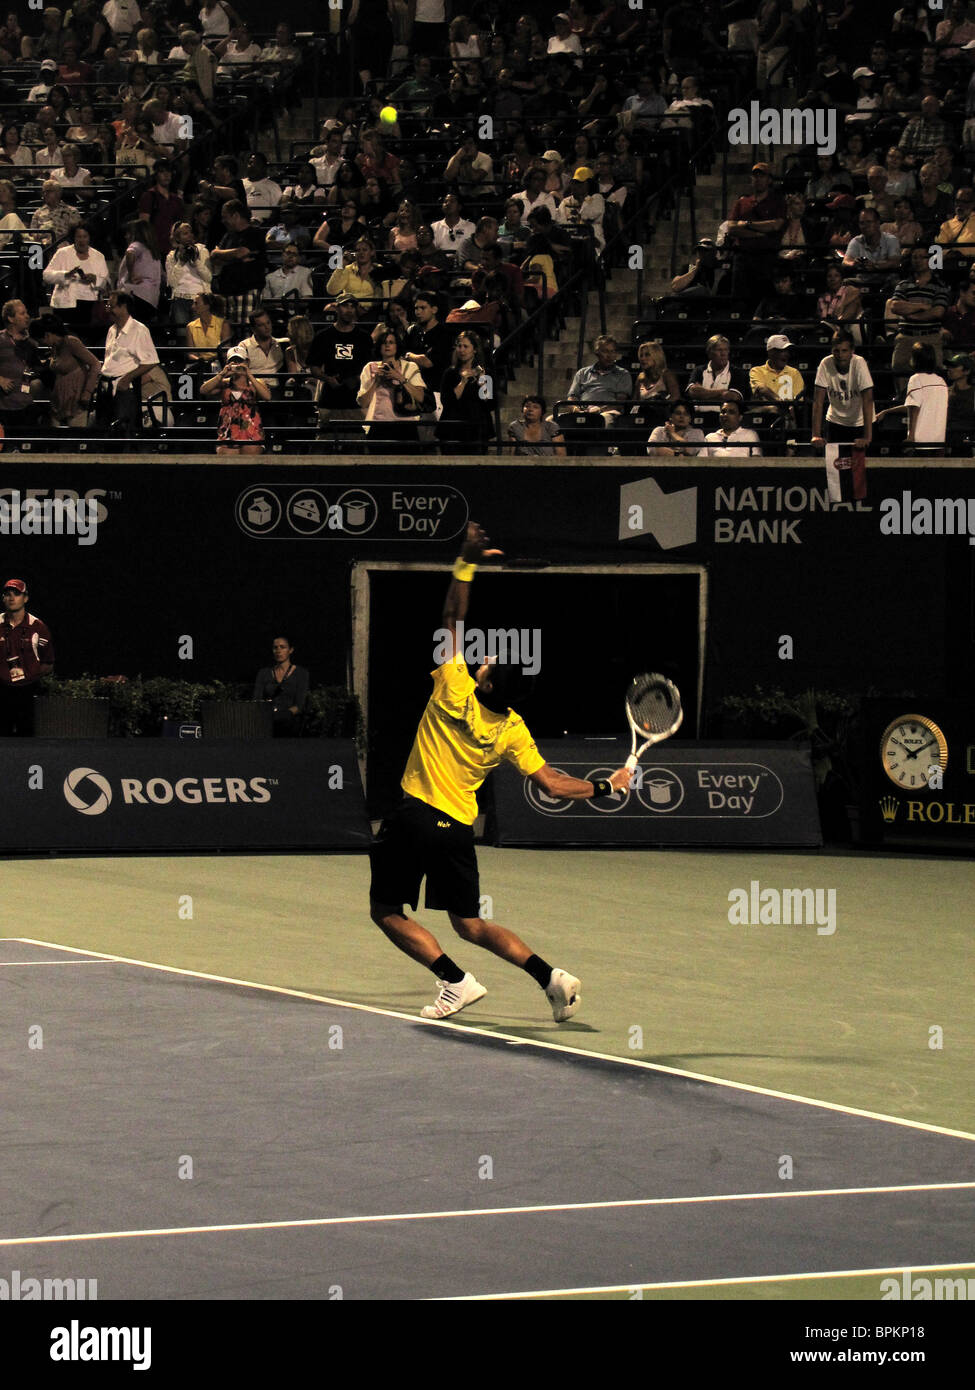 NOVAK DJOKOVIC World Number 1 One  (SERBIA) COMPETING IN ROGERS CUP, TENNIS MASTERS EVENT,  US OPEN SERIES AUGUST - Stock Image